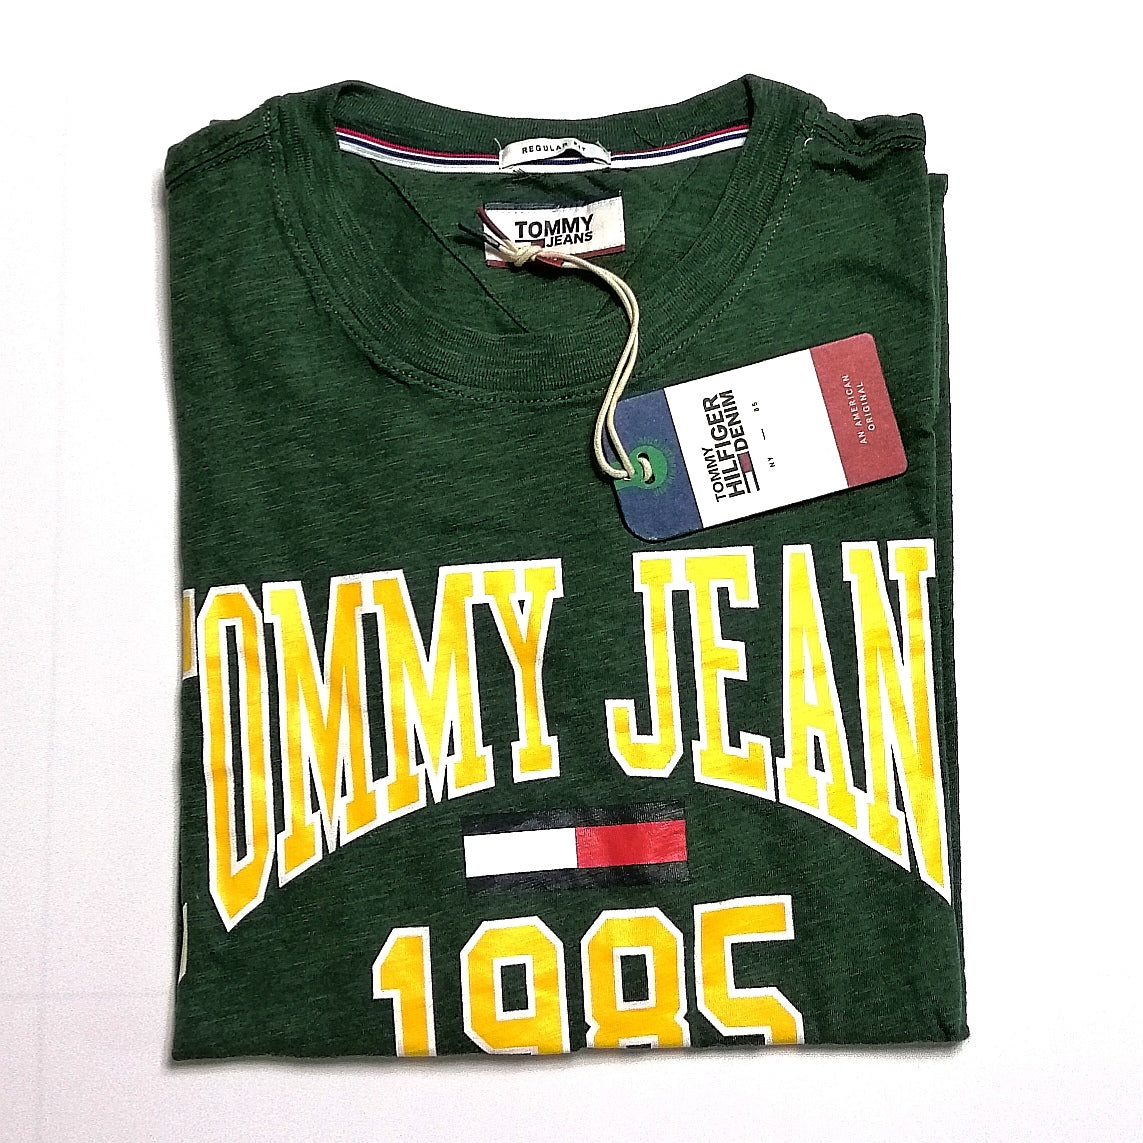 a1c20ca2 Tommy Hilfiger Jeans Collegiate Logo T Shirt Green - Style Up